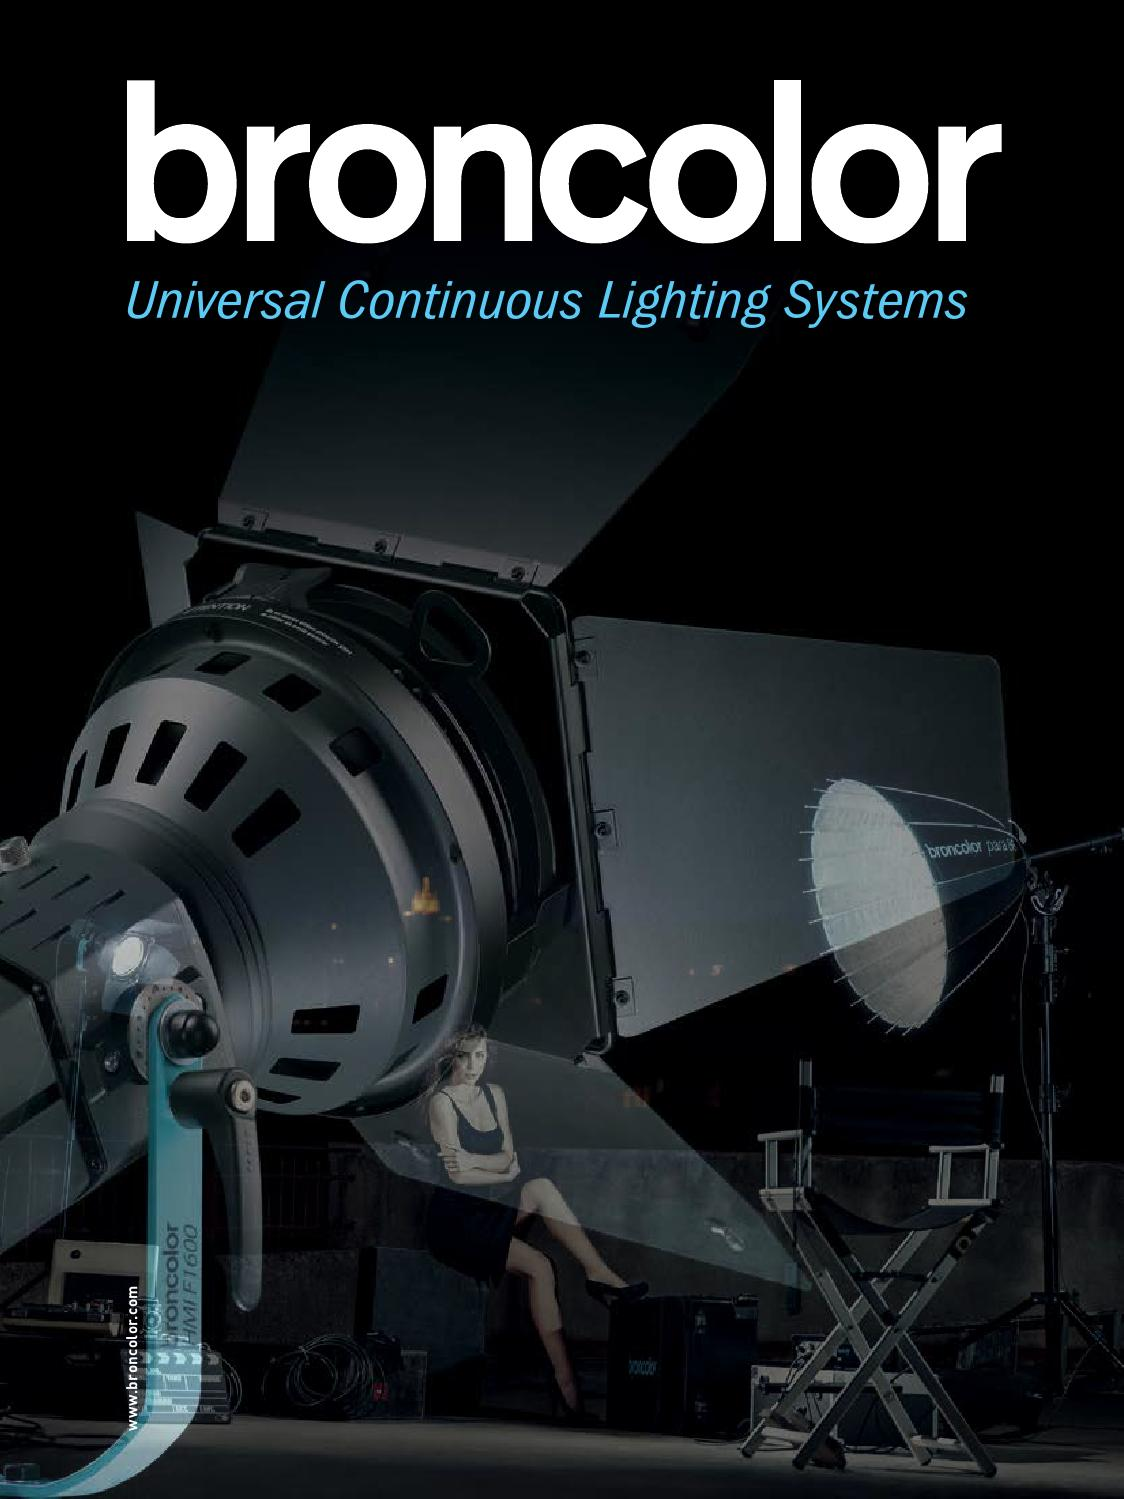 Accessories Bags Trolley Bag Foldable Broncolor Broncolor Hmi 2016 By Interfoto Issuu